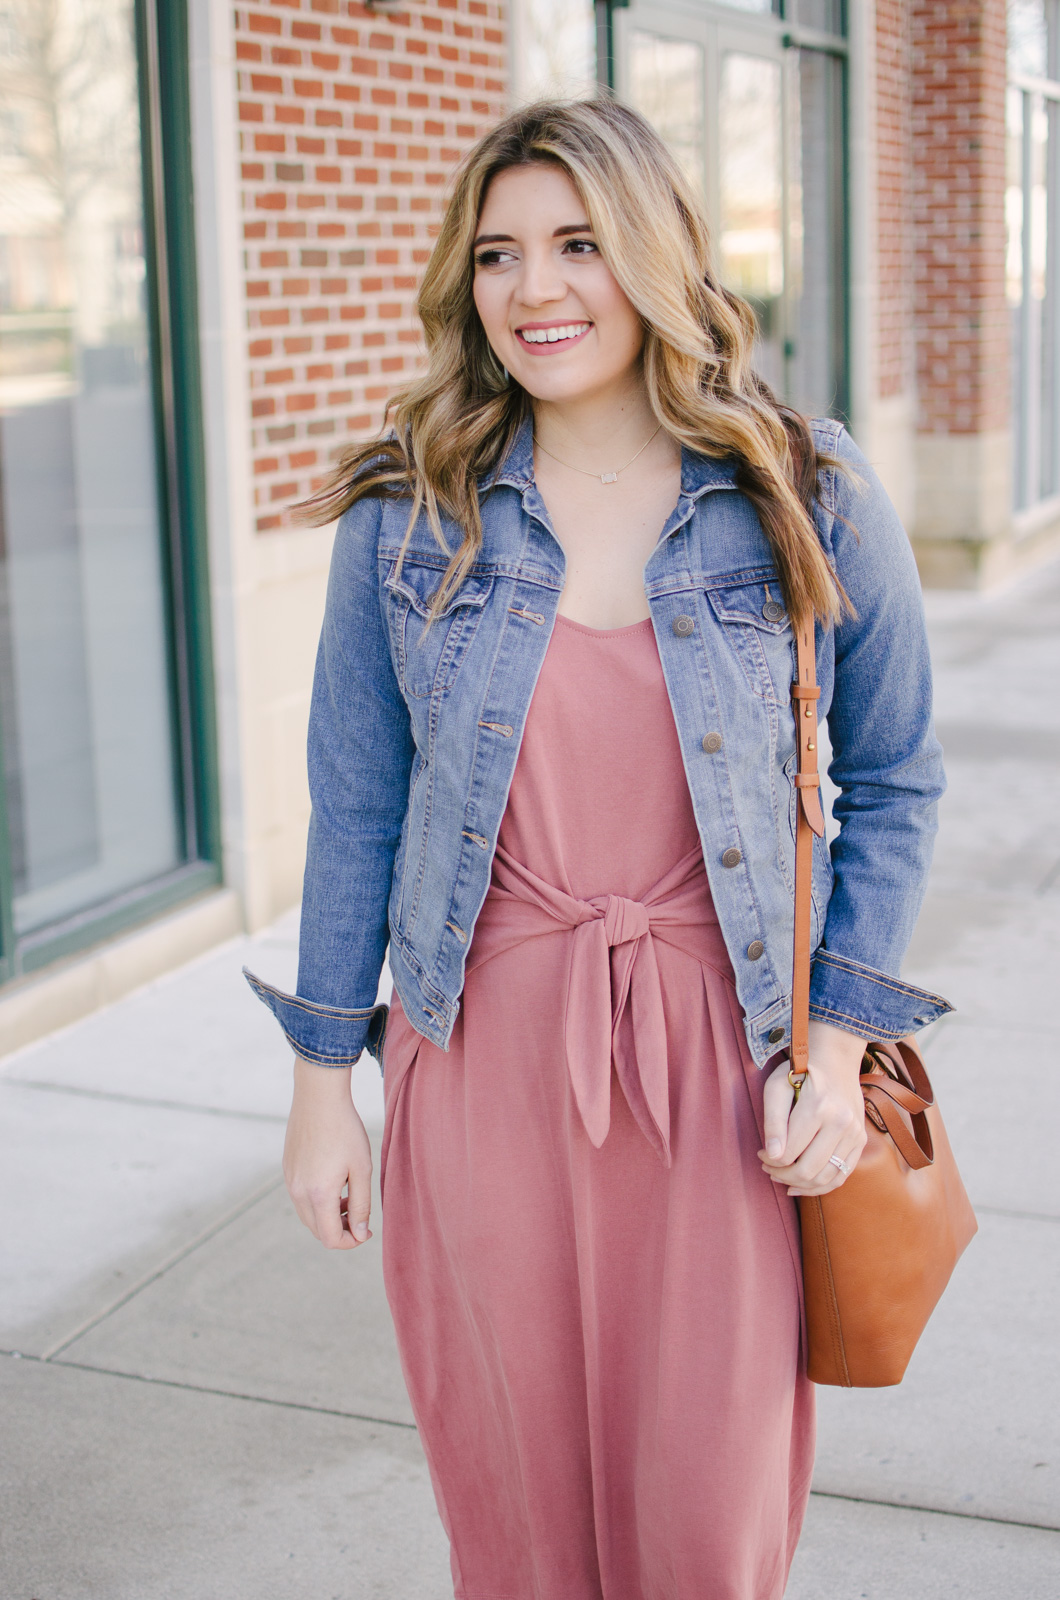 knotted midi dress outfit spring - how to wear a midi dress for spring! | Get outfit details for this spring midi dress outfit or see more cute spring outfit ideas at bylaurenm.com!